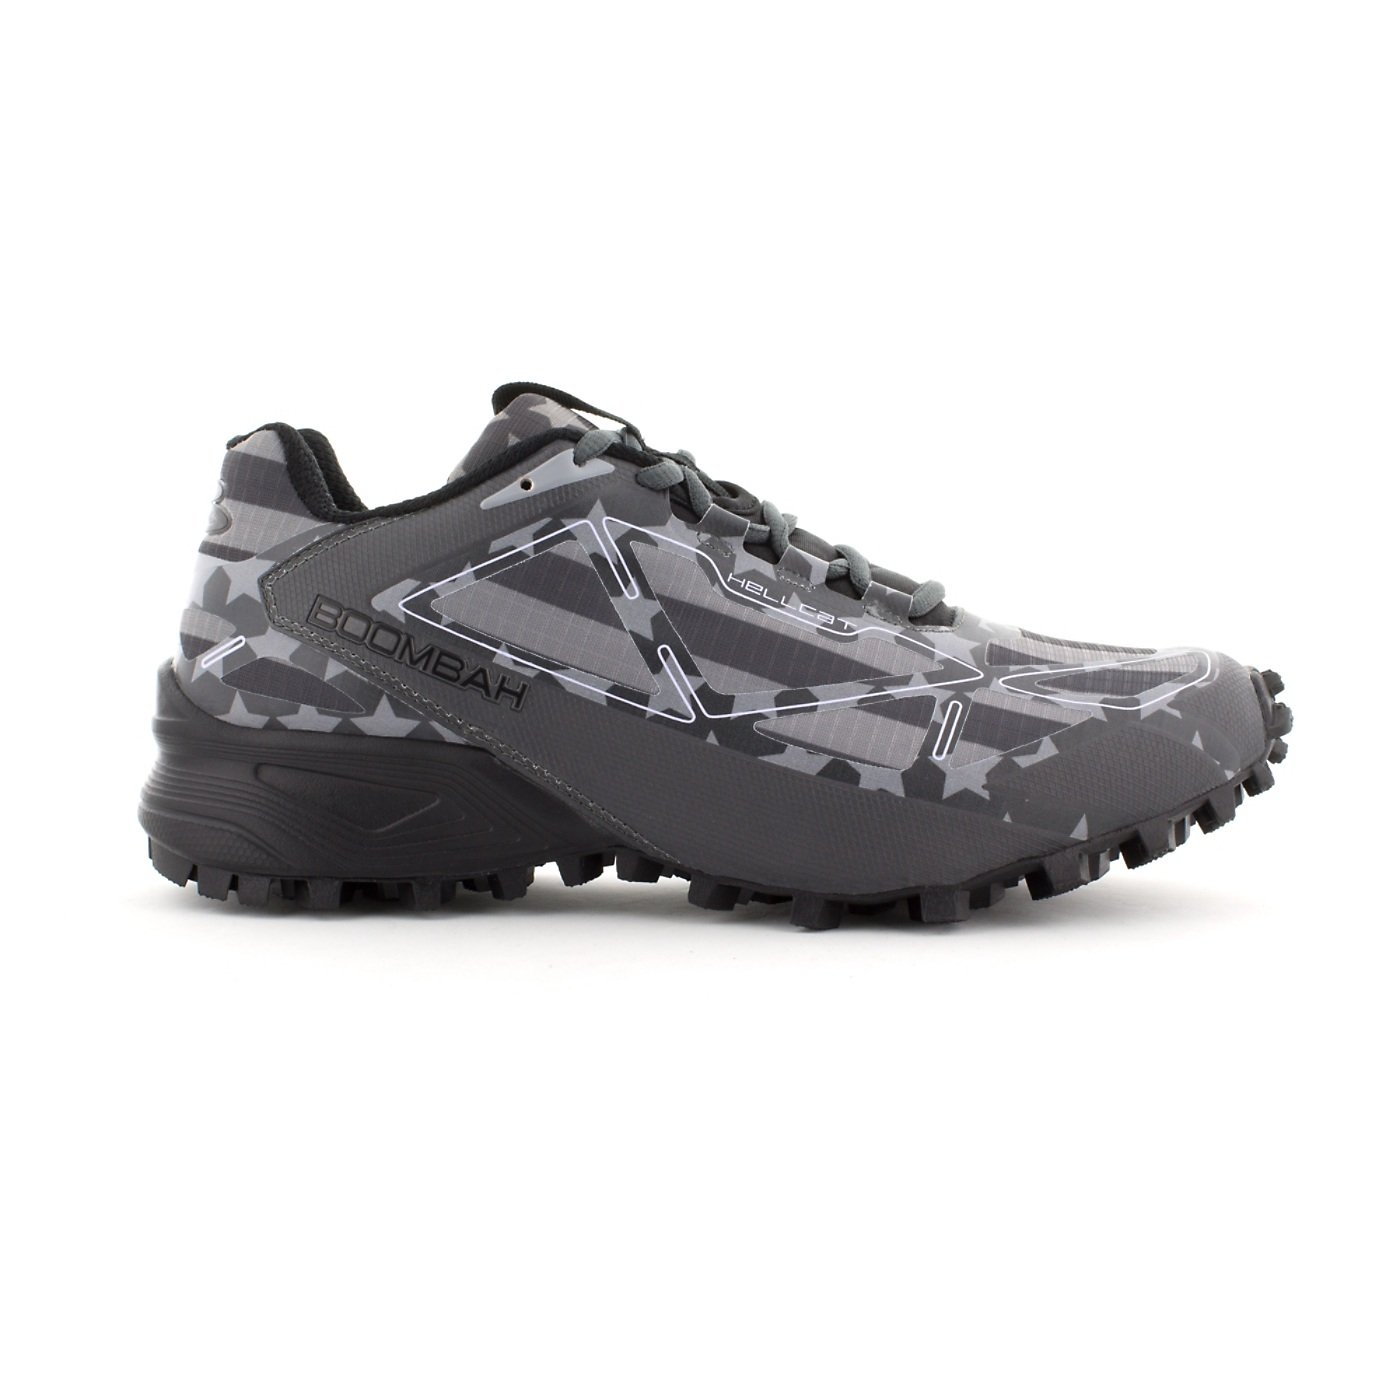 Boombah Men's Hellcat Trail Shoe - 14 Color Options - Multiple Sizes B073X5C3W6 8.5|Black/Charcoal/Gray